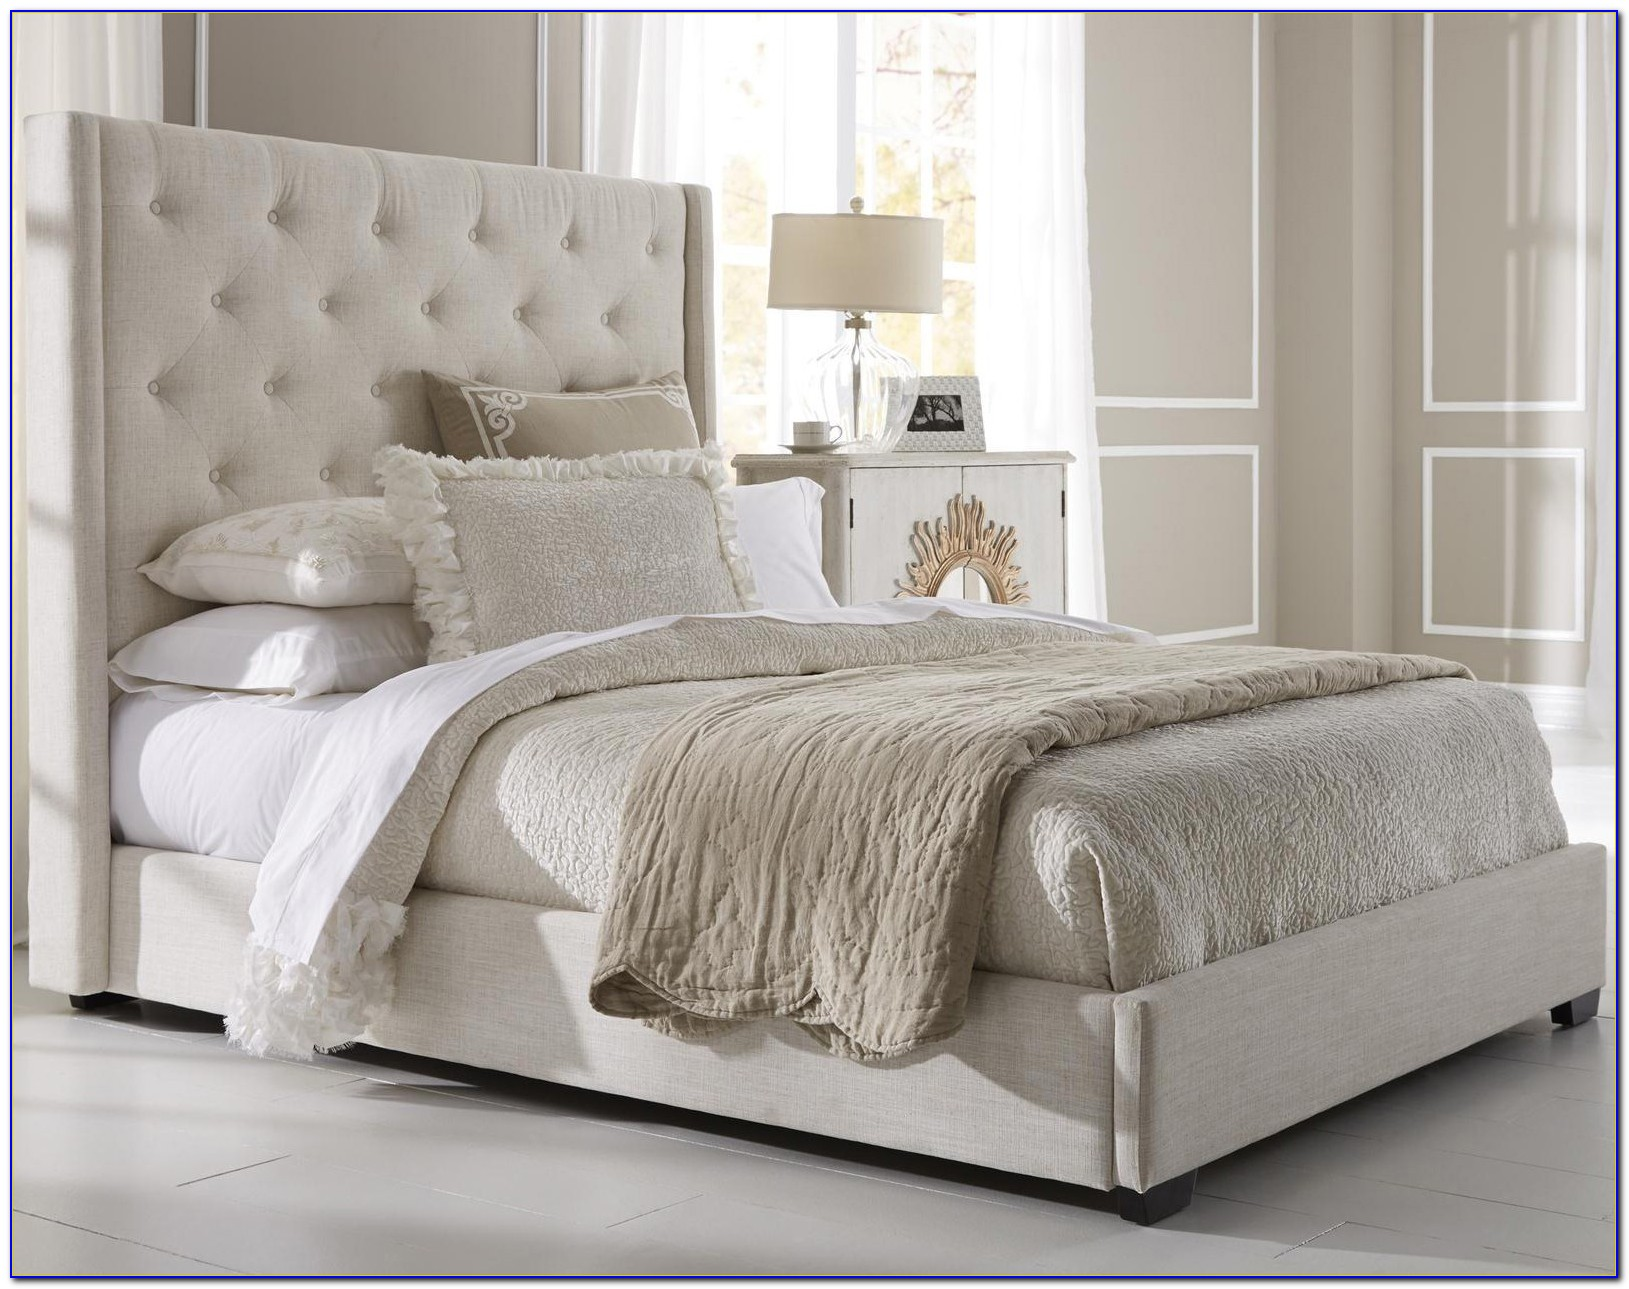 Upholstered Beds King Canada